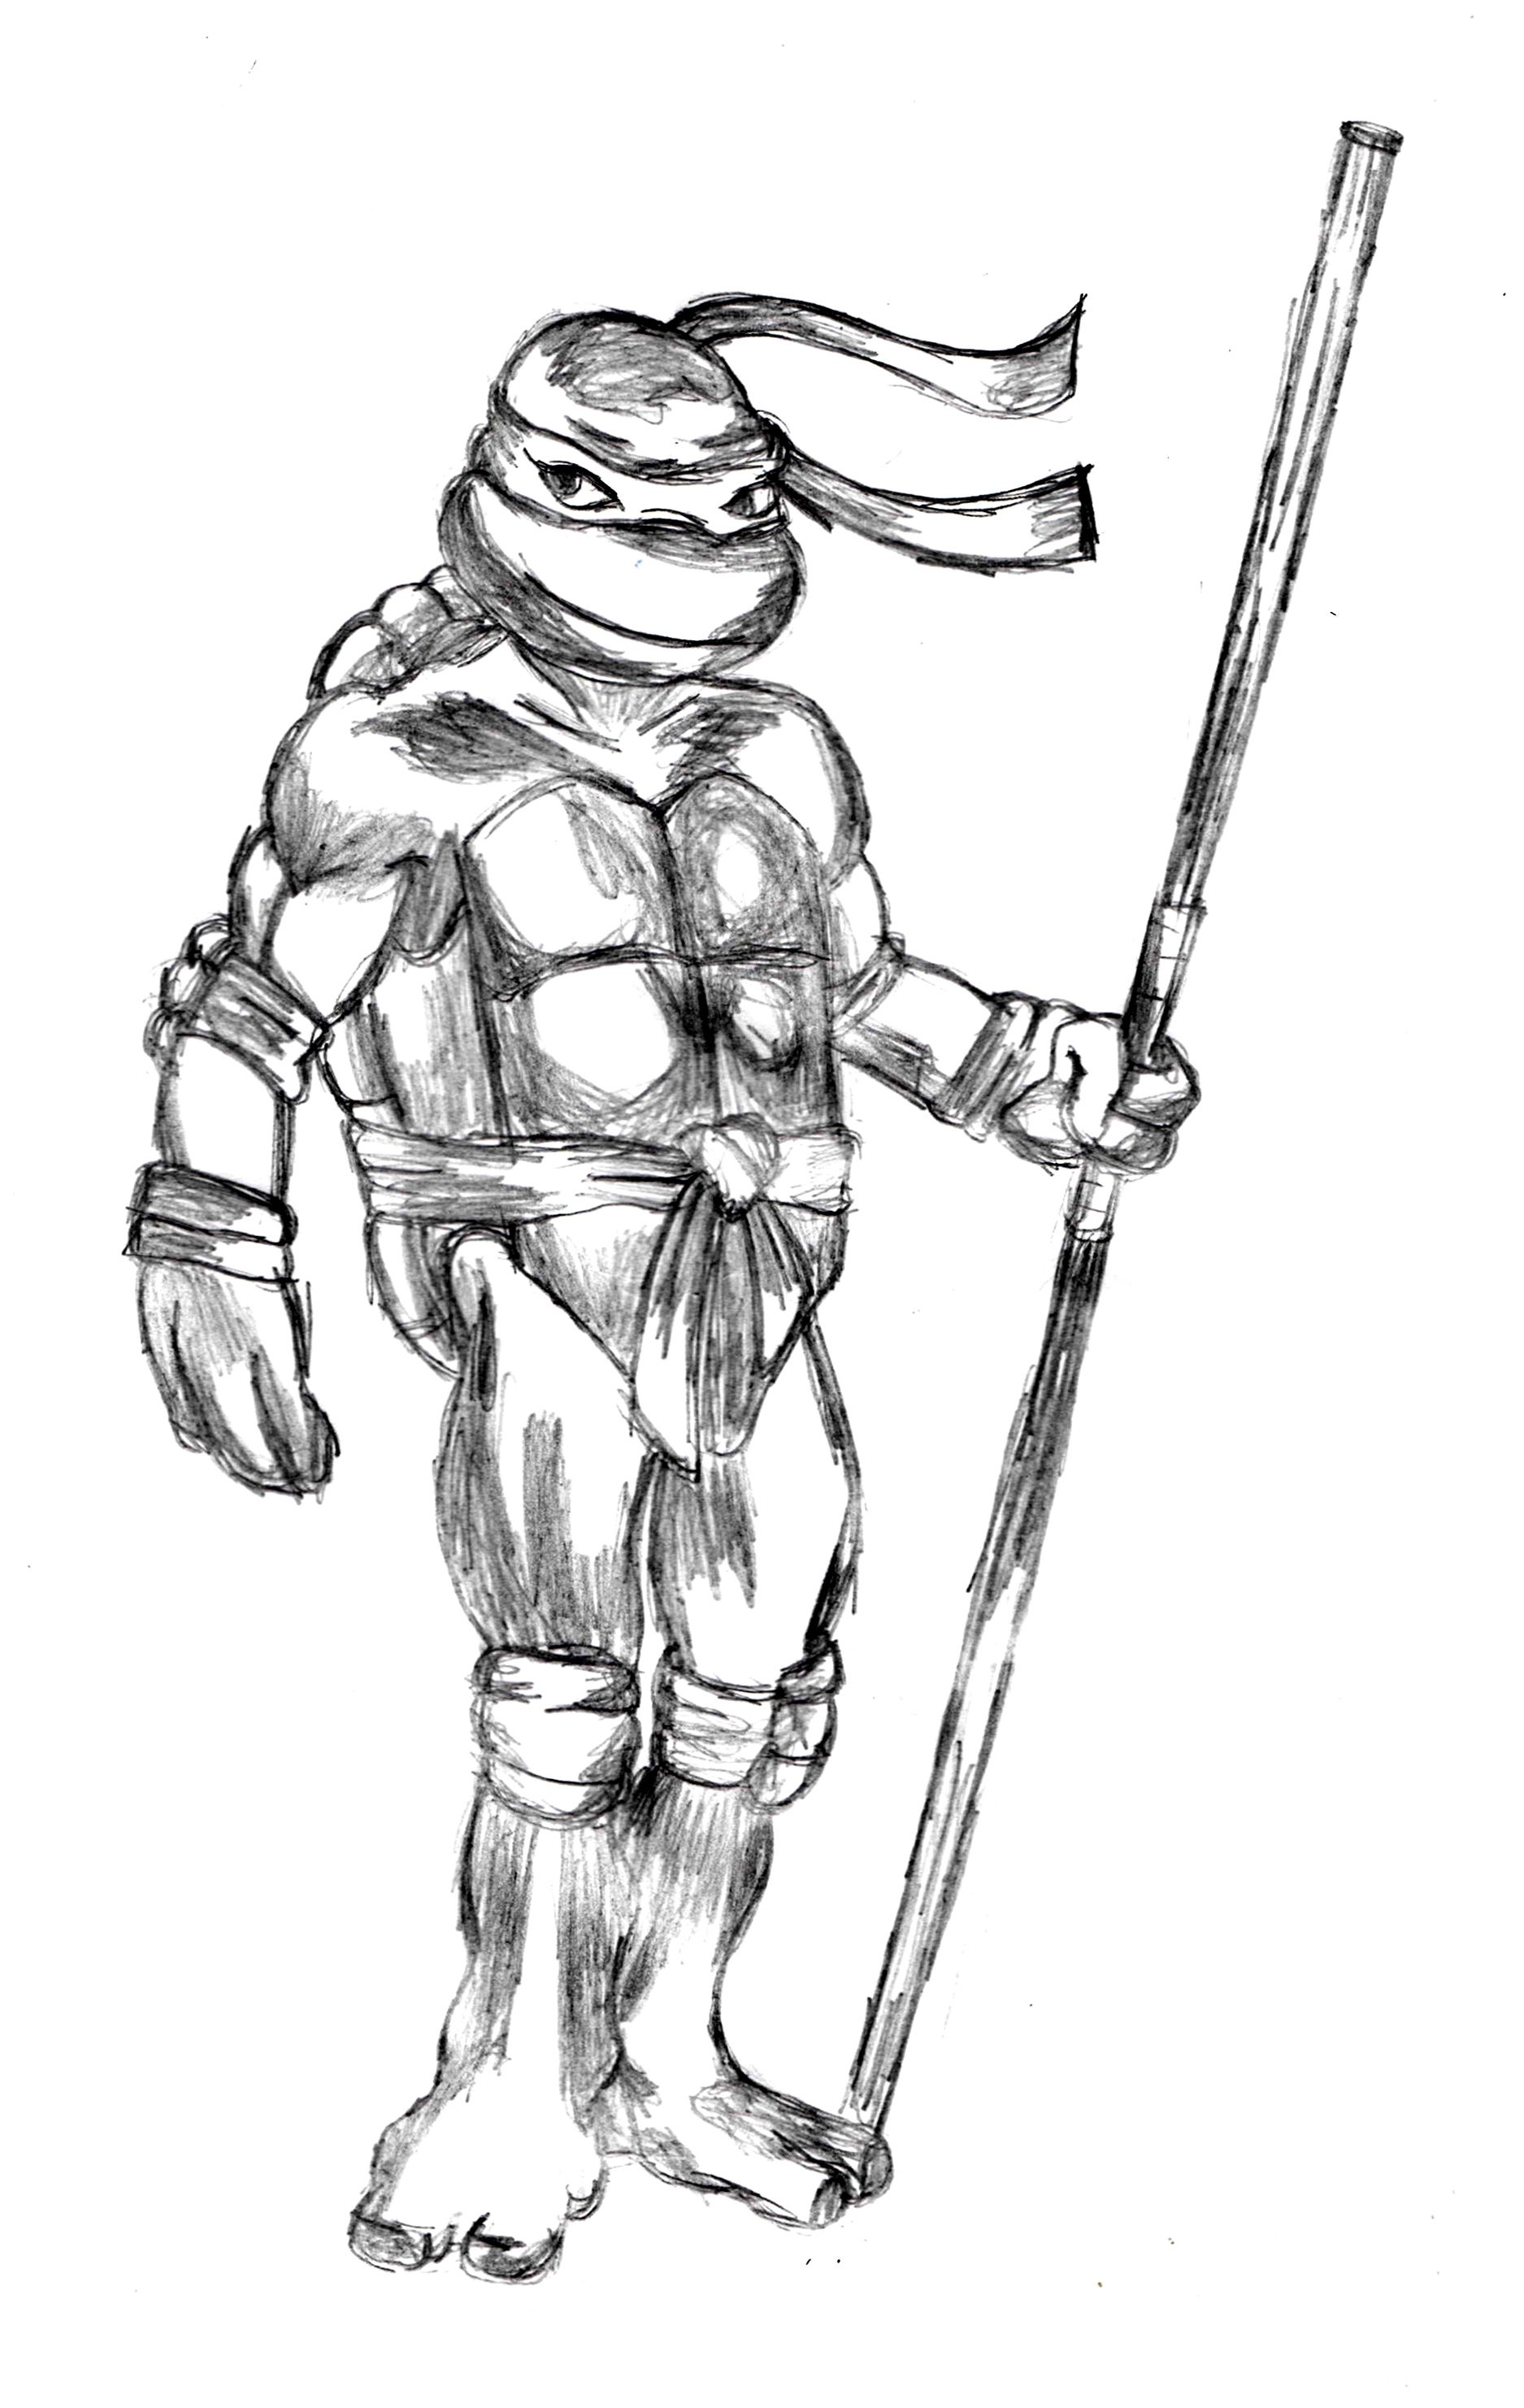 Donatello sketch http://drawingmanuals.com/manual/how-to